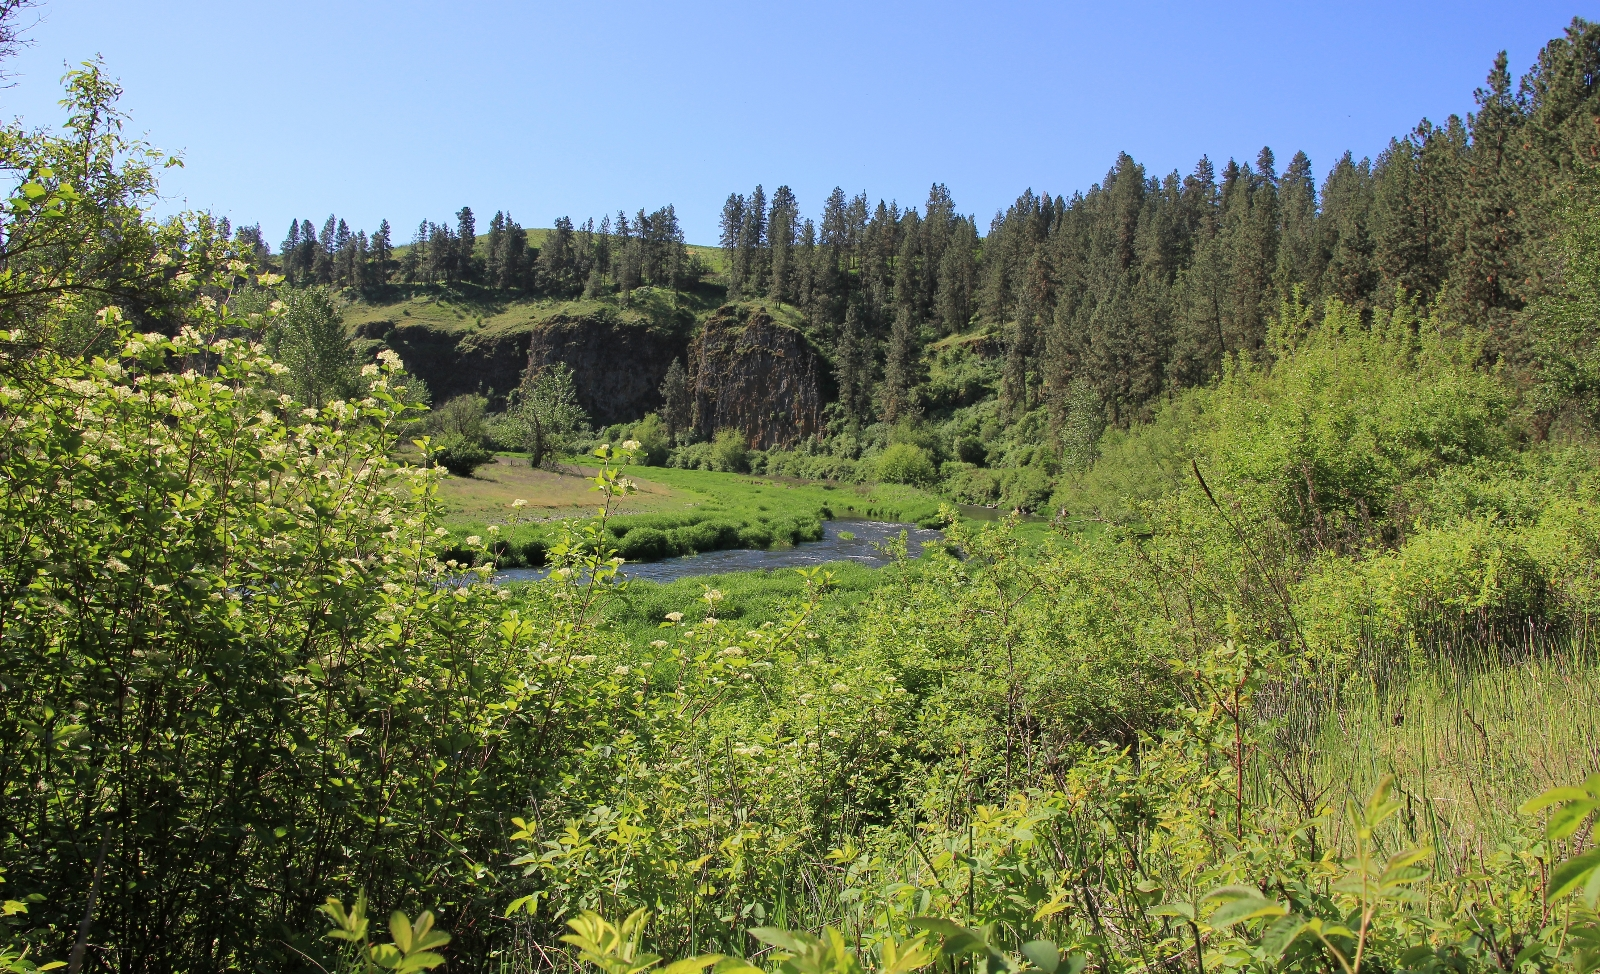 05-08-16 Colfax River Trail (42)